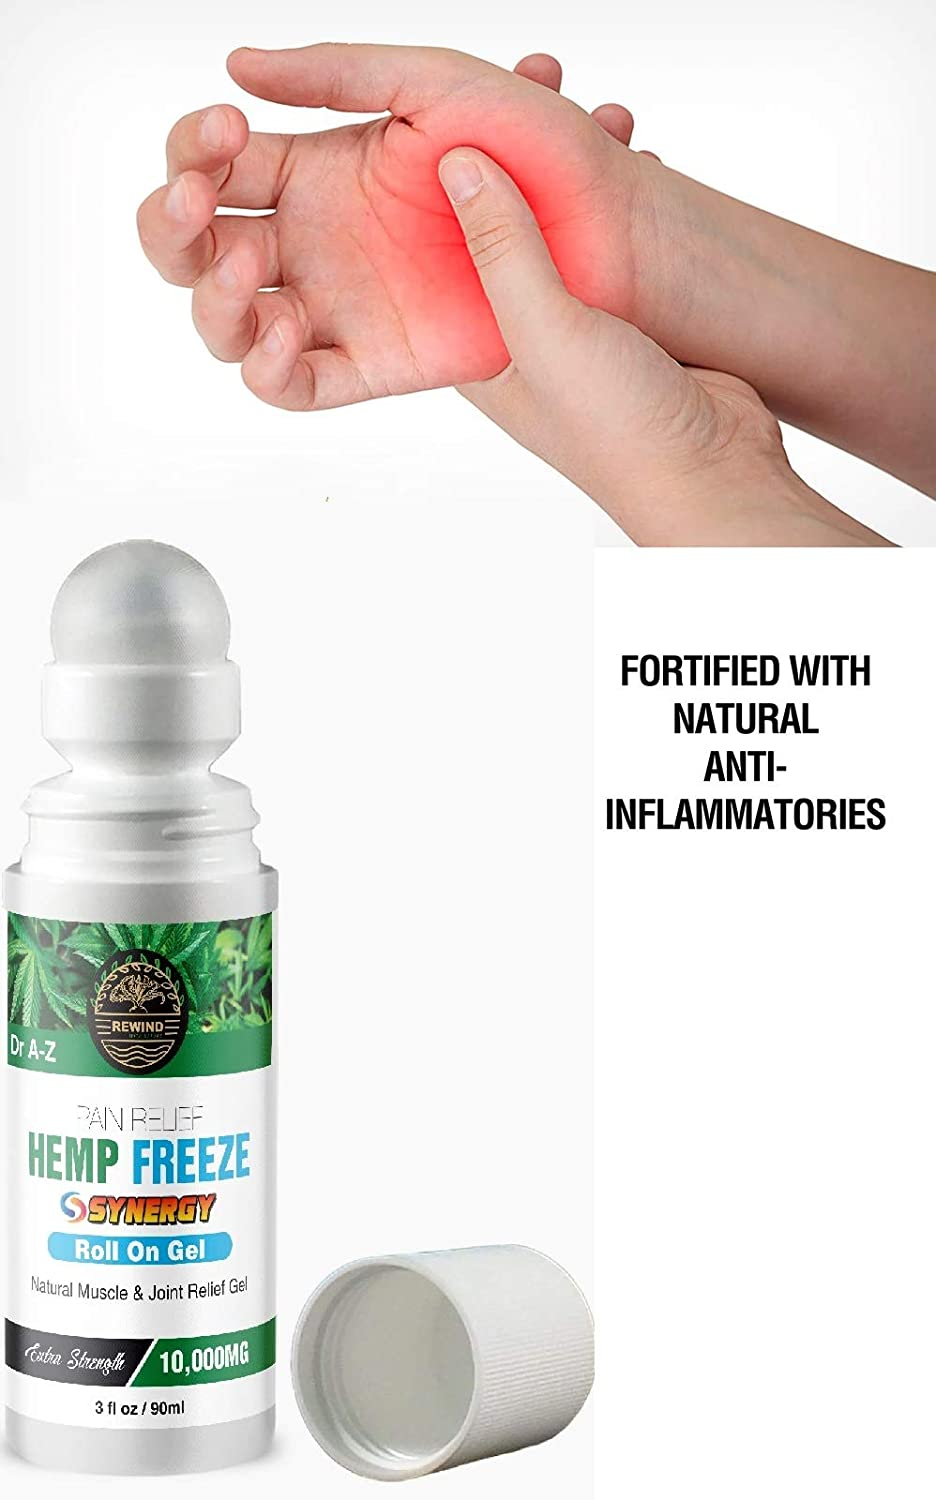 Natural Hemp Extract Roll On Cooling Freeze Effect, Turmeric, Ginger, Arnica, Emu Oil for A Fast & Lasting Pain Relief for Arthritis, Sore Joint, Backaches Sprains, Joint & Back Pain Stop Pain